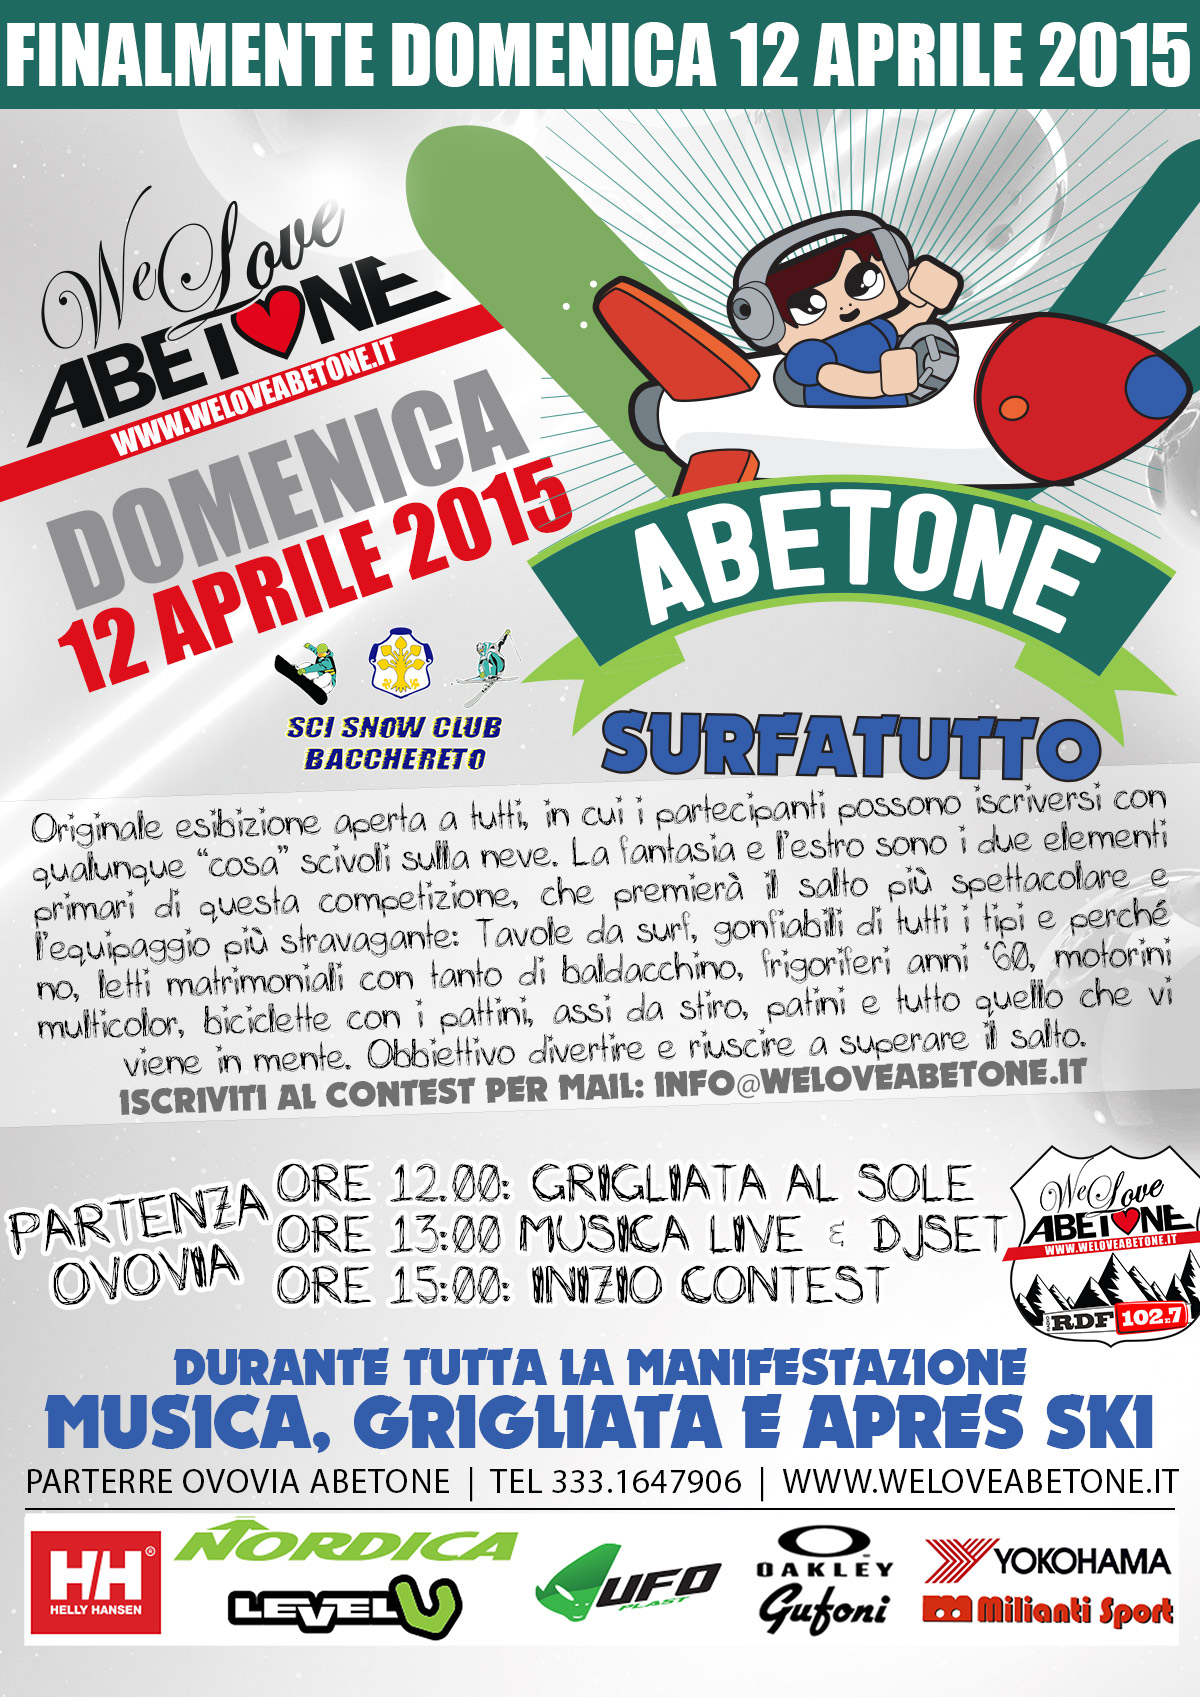 abetone surfatutto 2015